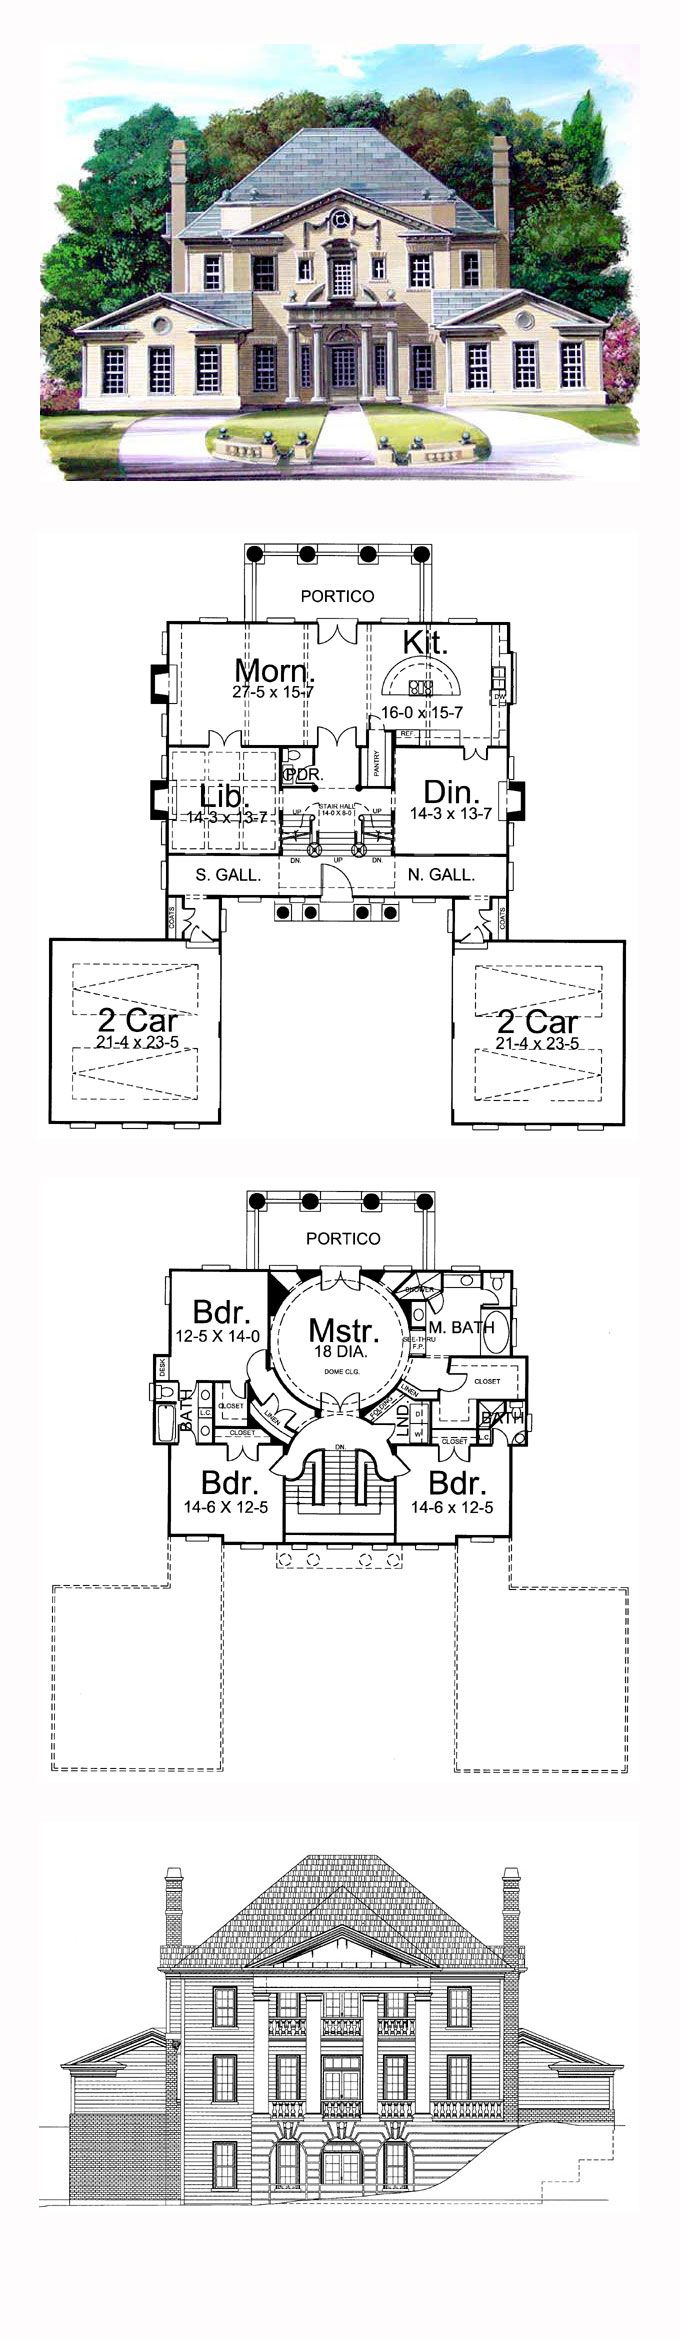 Greek Revival House Plan 72049 | Total Living Area: 3270 sq. ft., 4 bedrooms and 3 bathrooms. #greekrevivalhome